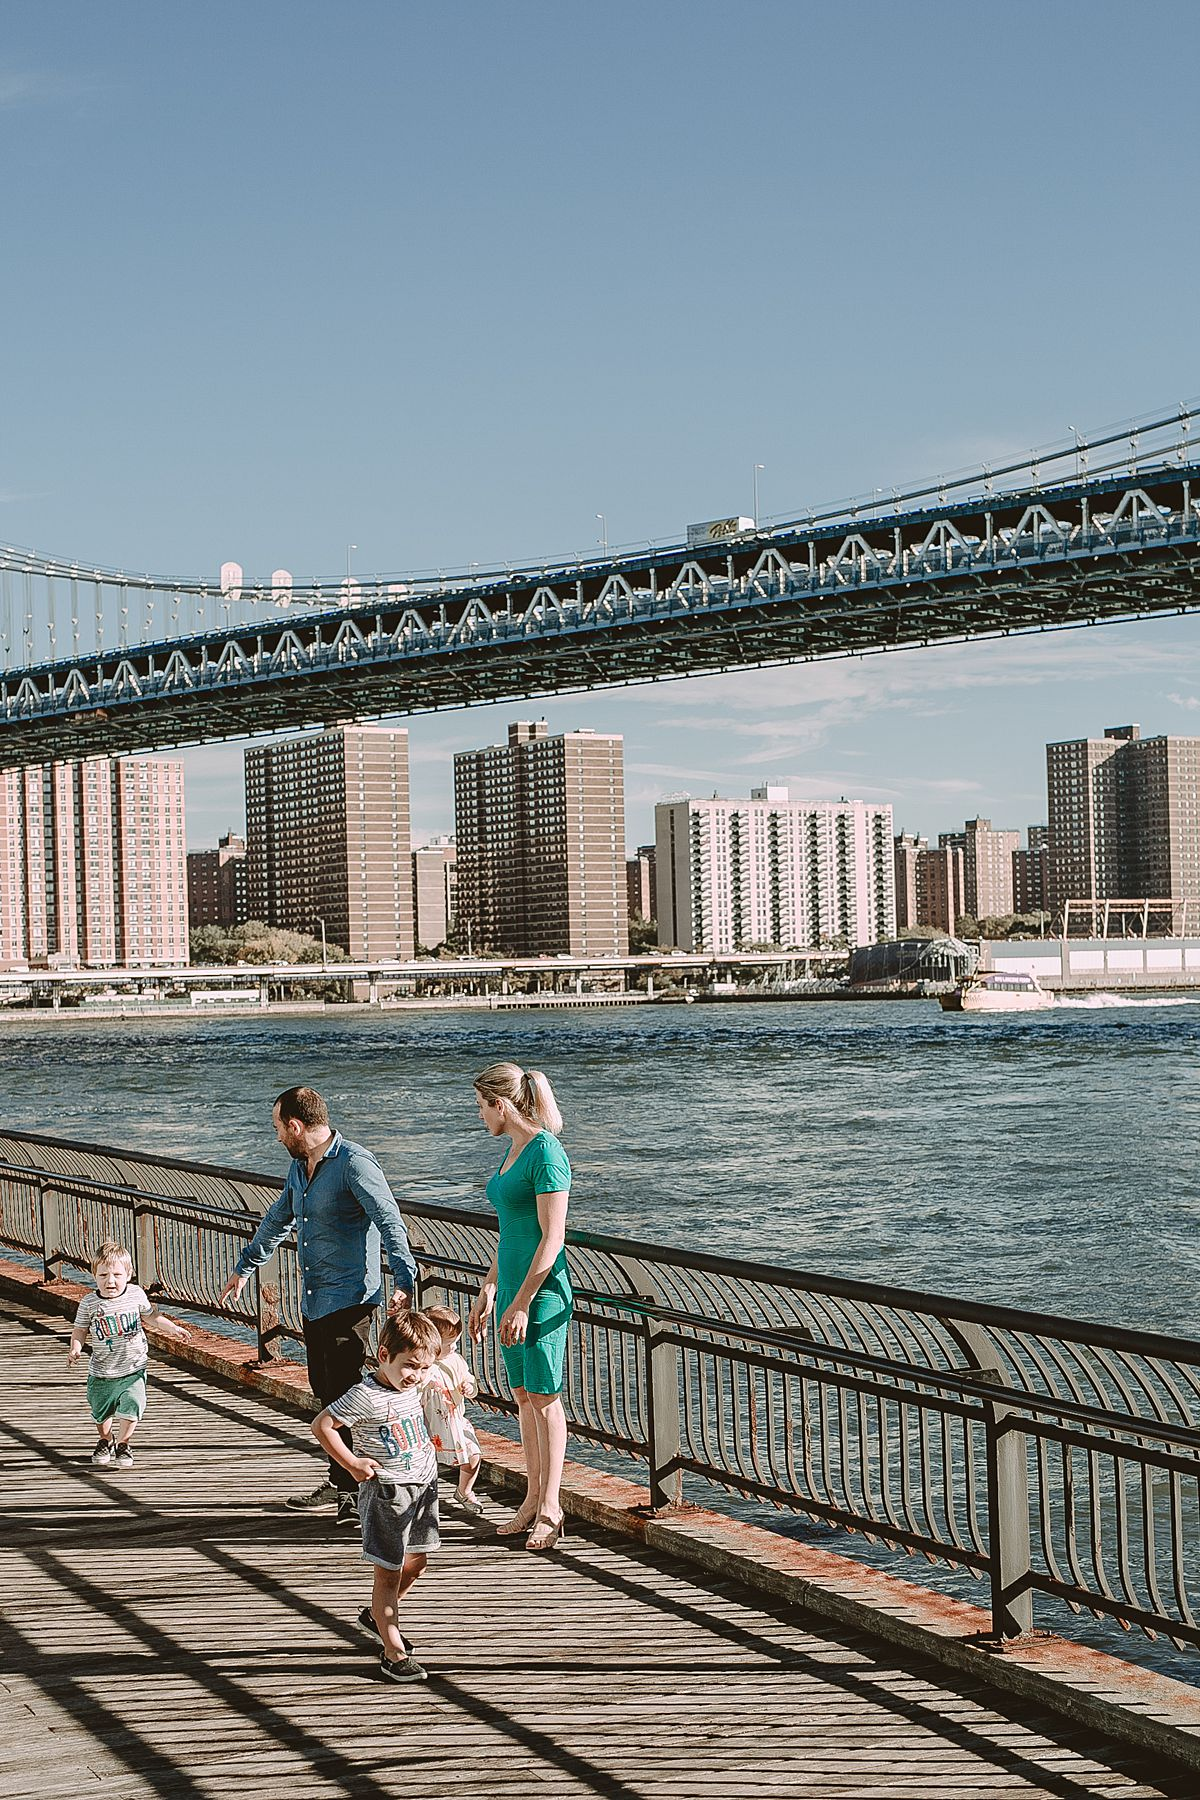 candid photo of family of five walking along the brooklyn promenade.portrait of son with mum and dad out front of jane's carousel dumbo brooklyn. photo by nyc family photographer krystil mcdowall